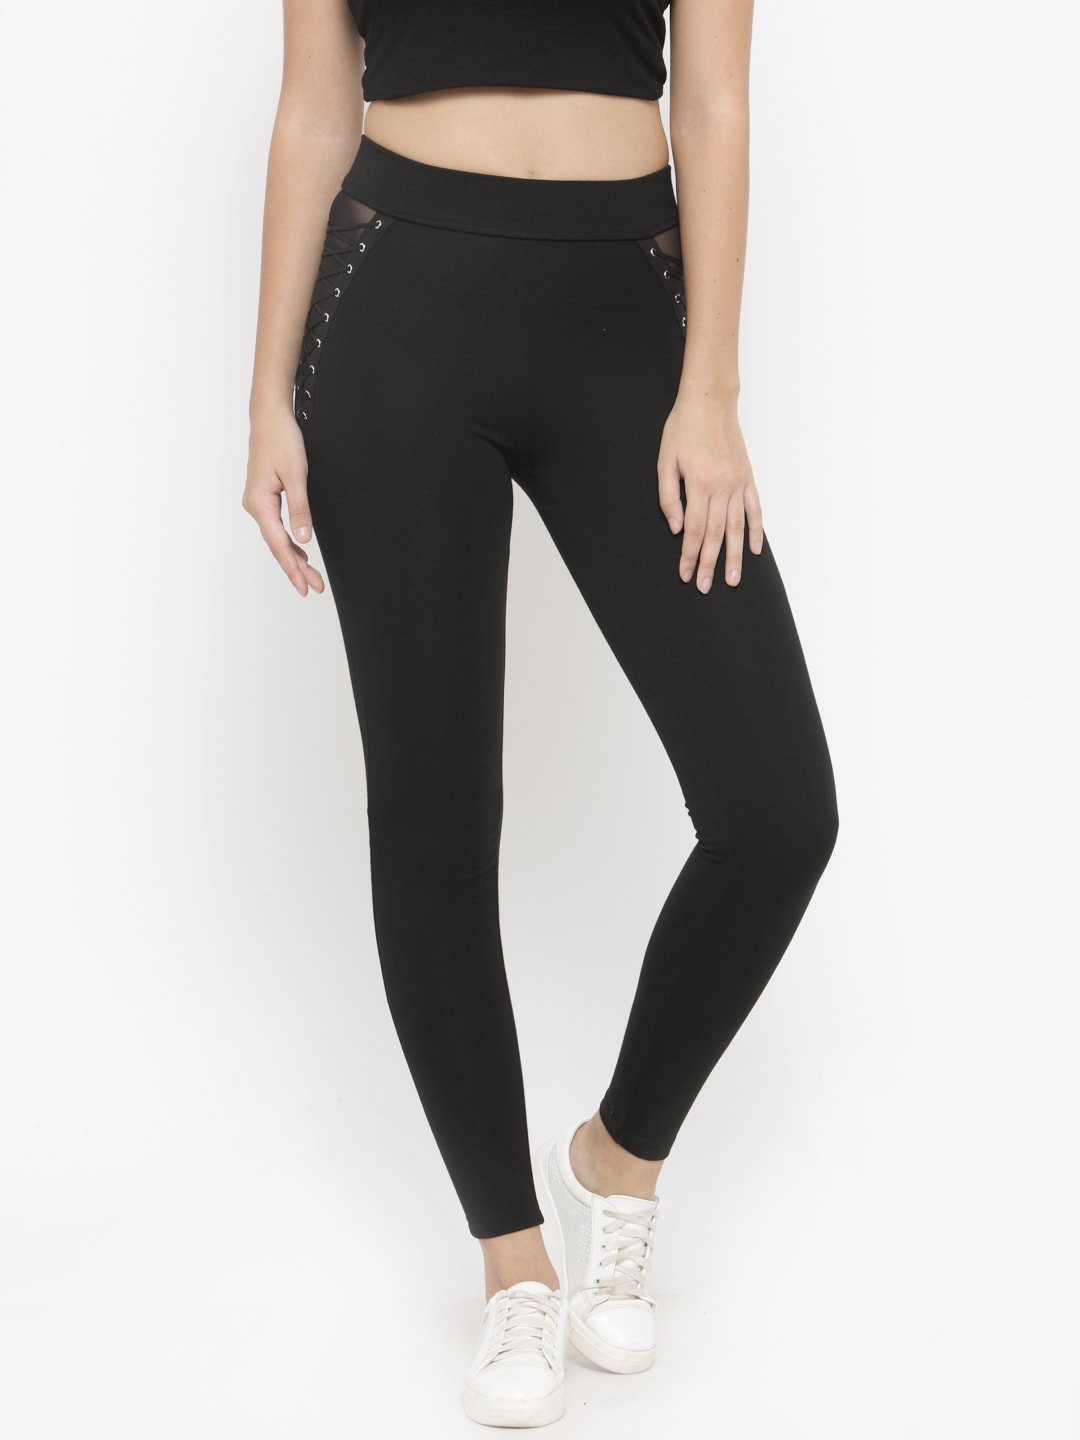 FOREVER 21 Black Treggings with Lace-Ups image